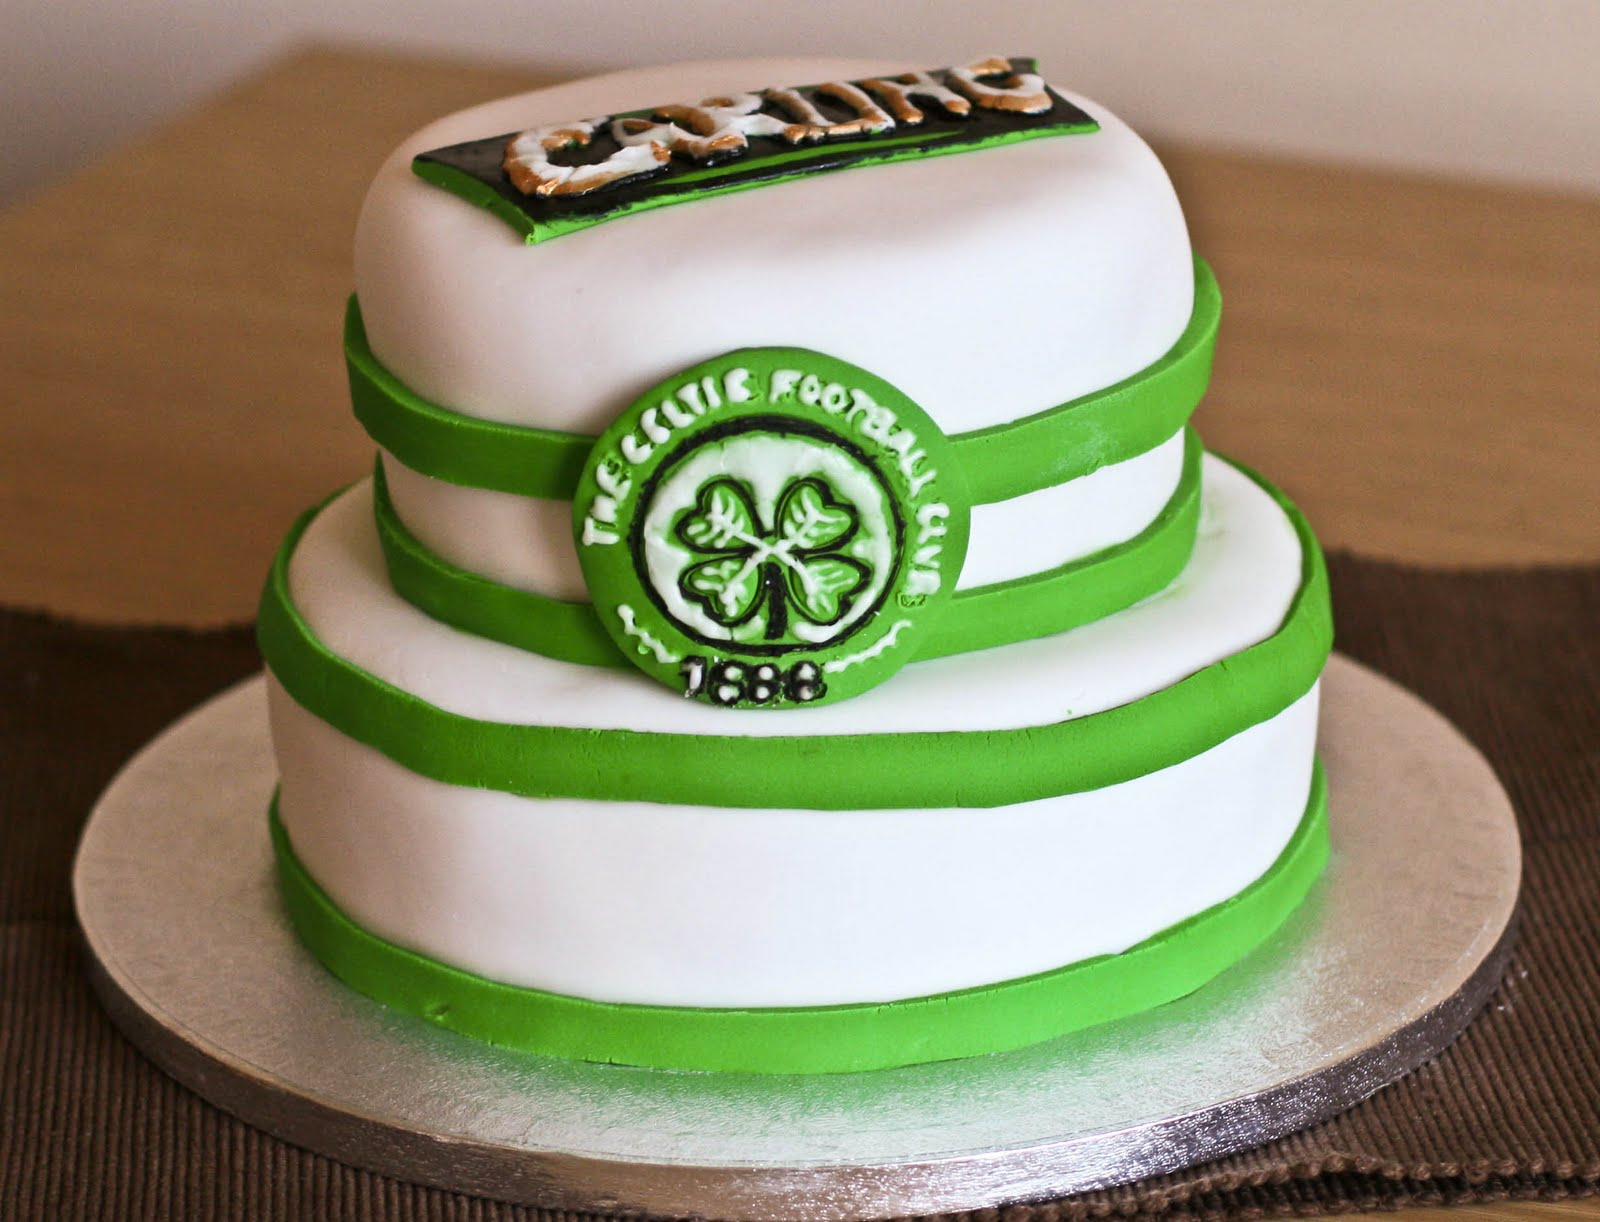 Celtic Football Club Cake Topper